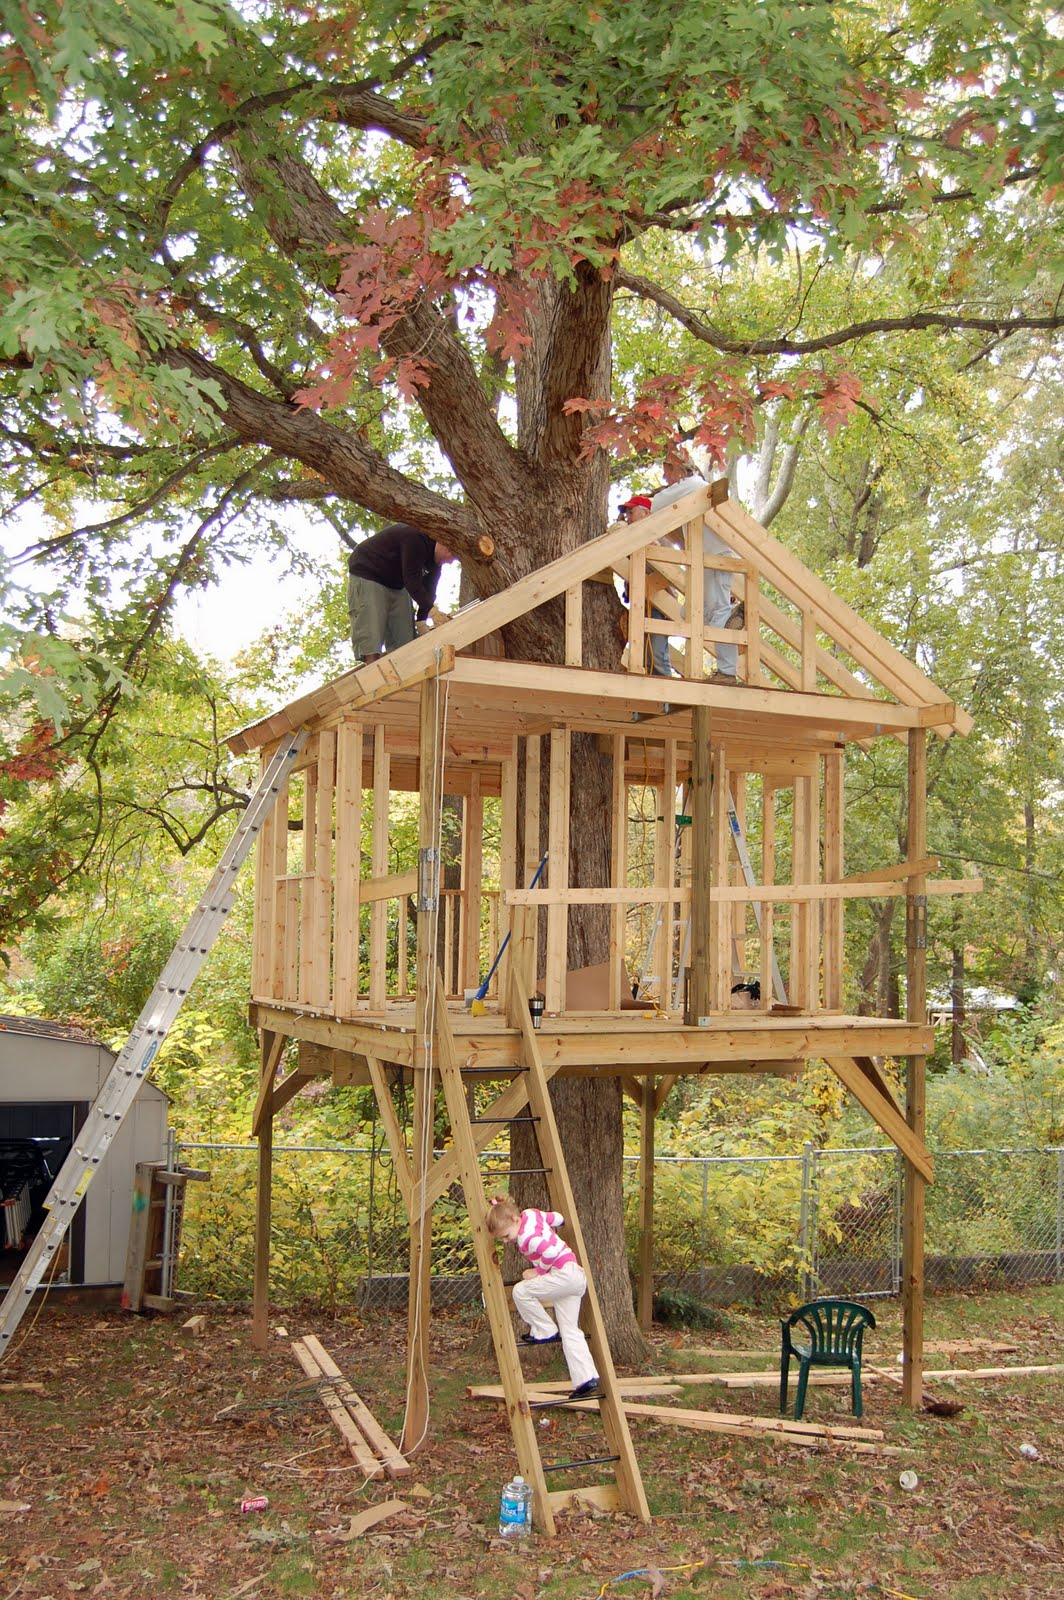 Pictures Of Tree Houses And Play From Around The